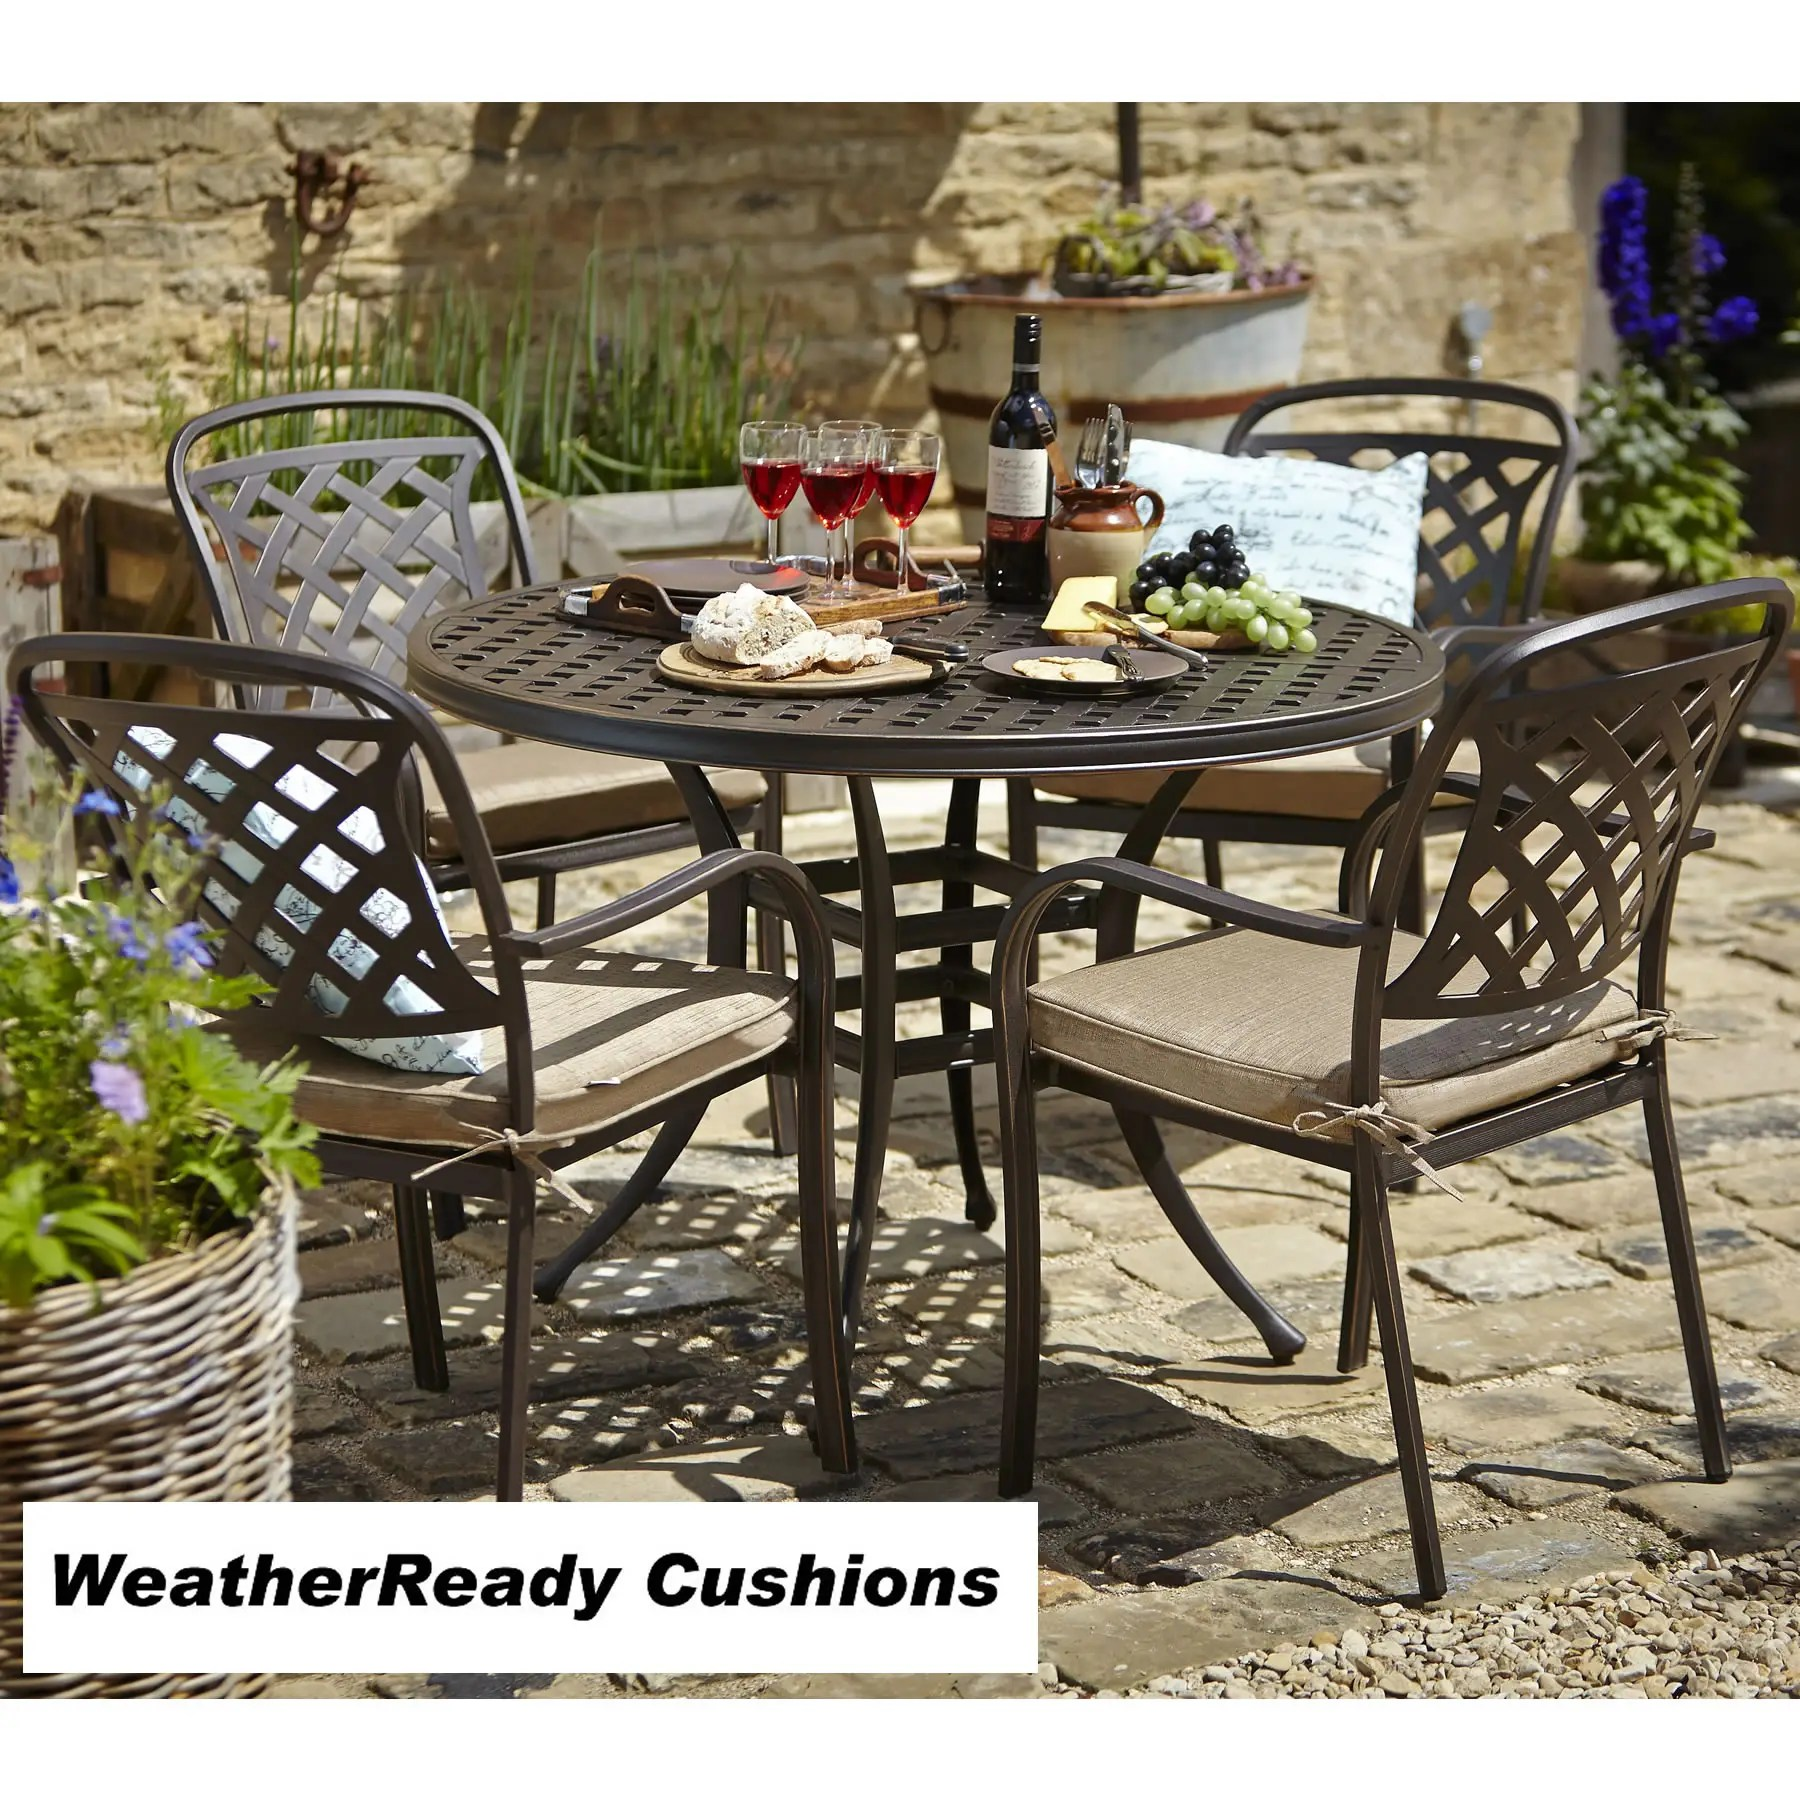 Hartman Berkeley 4 Seat Round Table Set BronzeDune BERKSET18BD02 Garden Furniture World